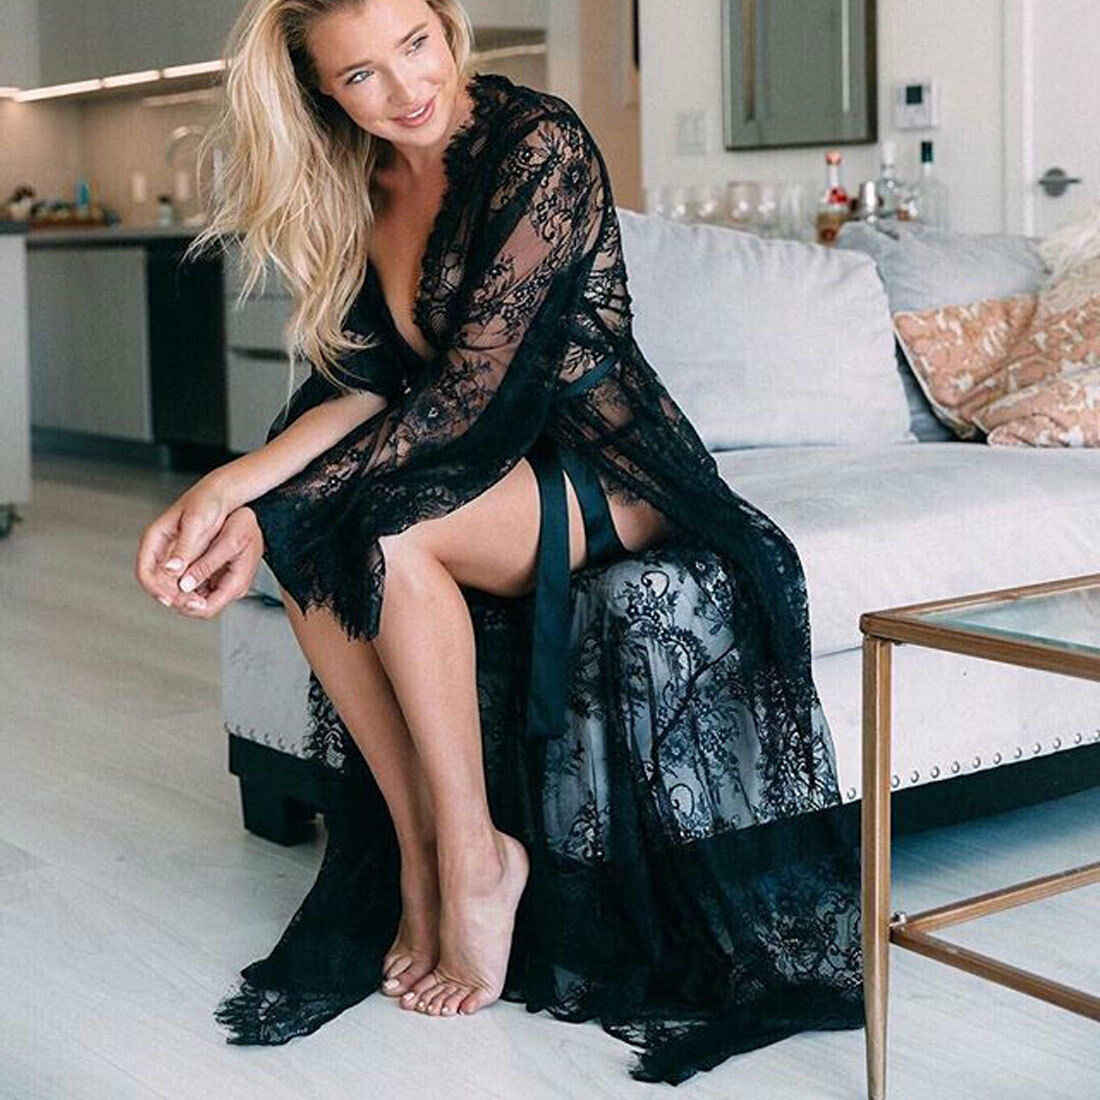 Summer Sexy Women Bikini Cover Up Black White Lace Kimono Boho Beach Long Maxi Dress Sheer Loose Kaftan Tunic Swimsuit